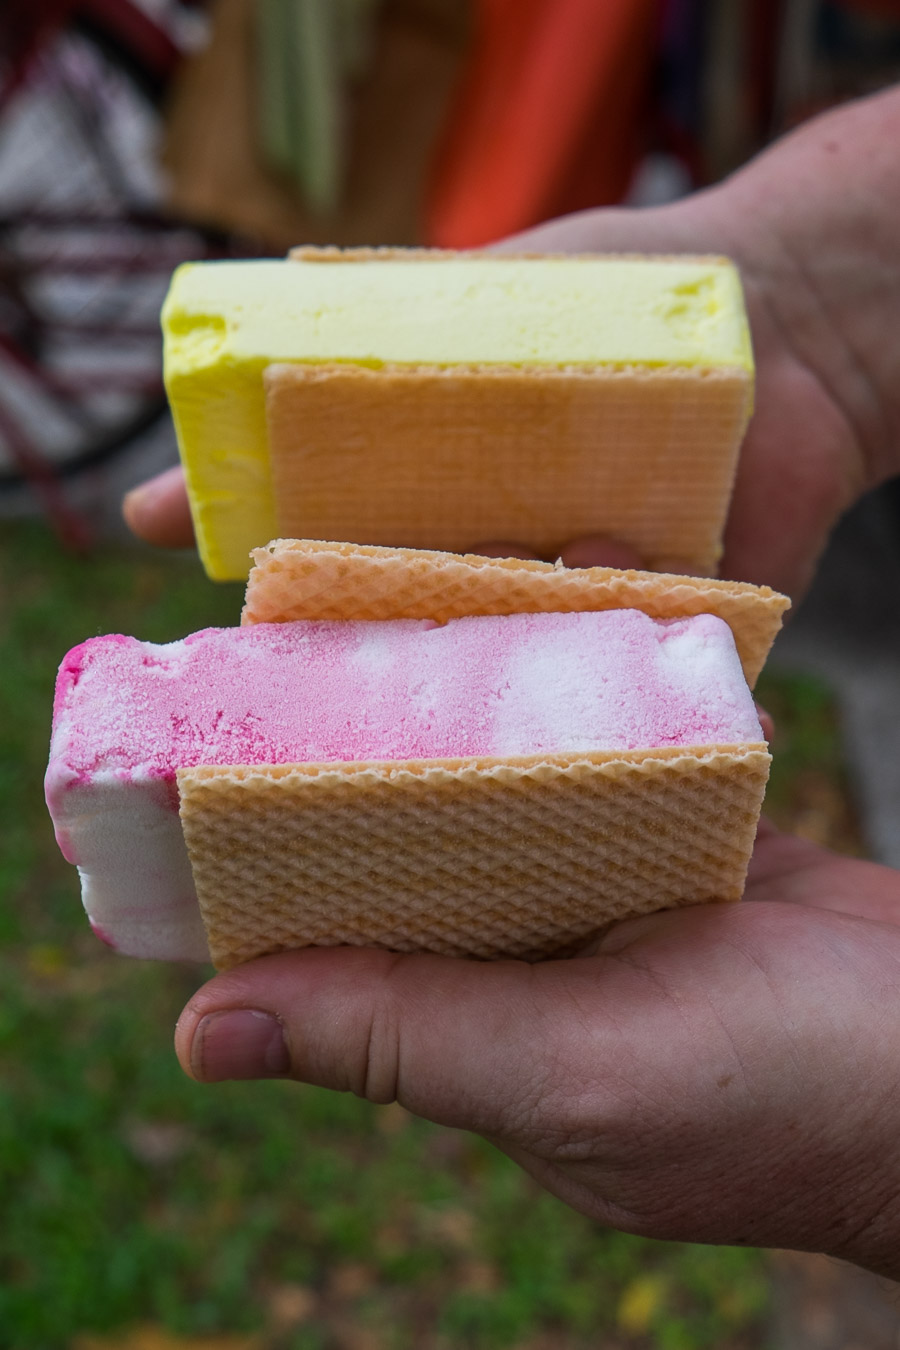 Raspberry ripple and durian wafers